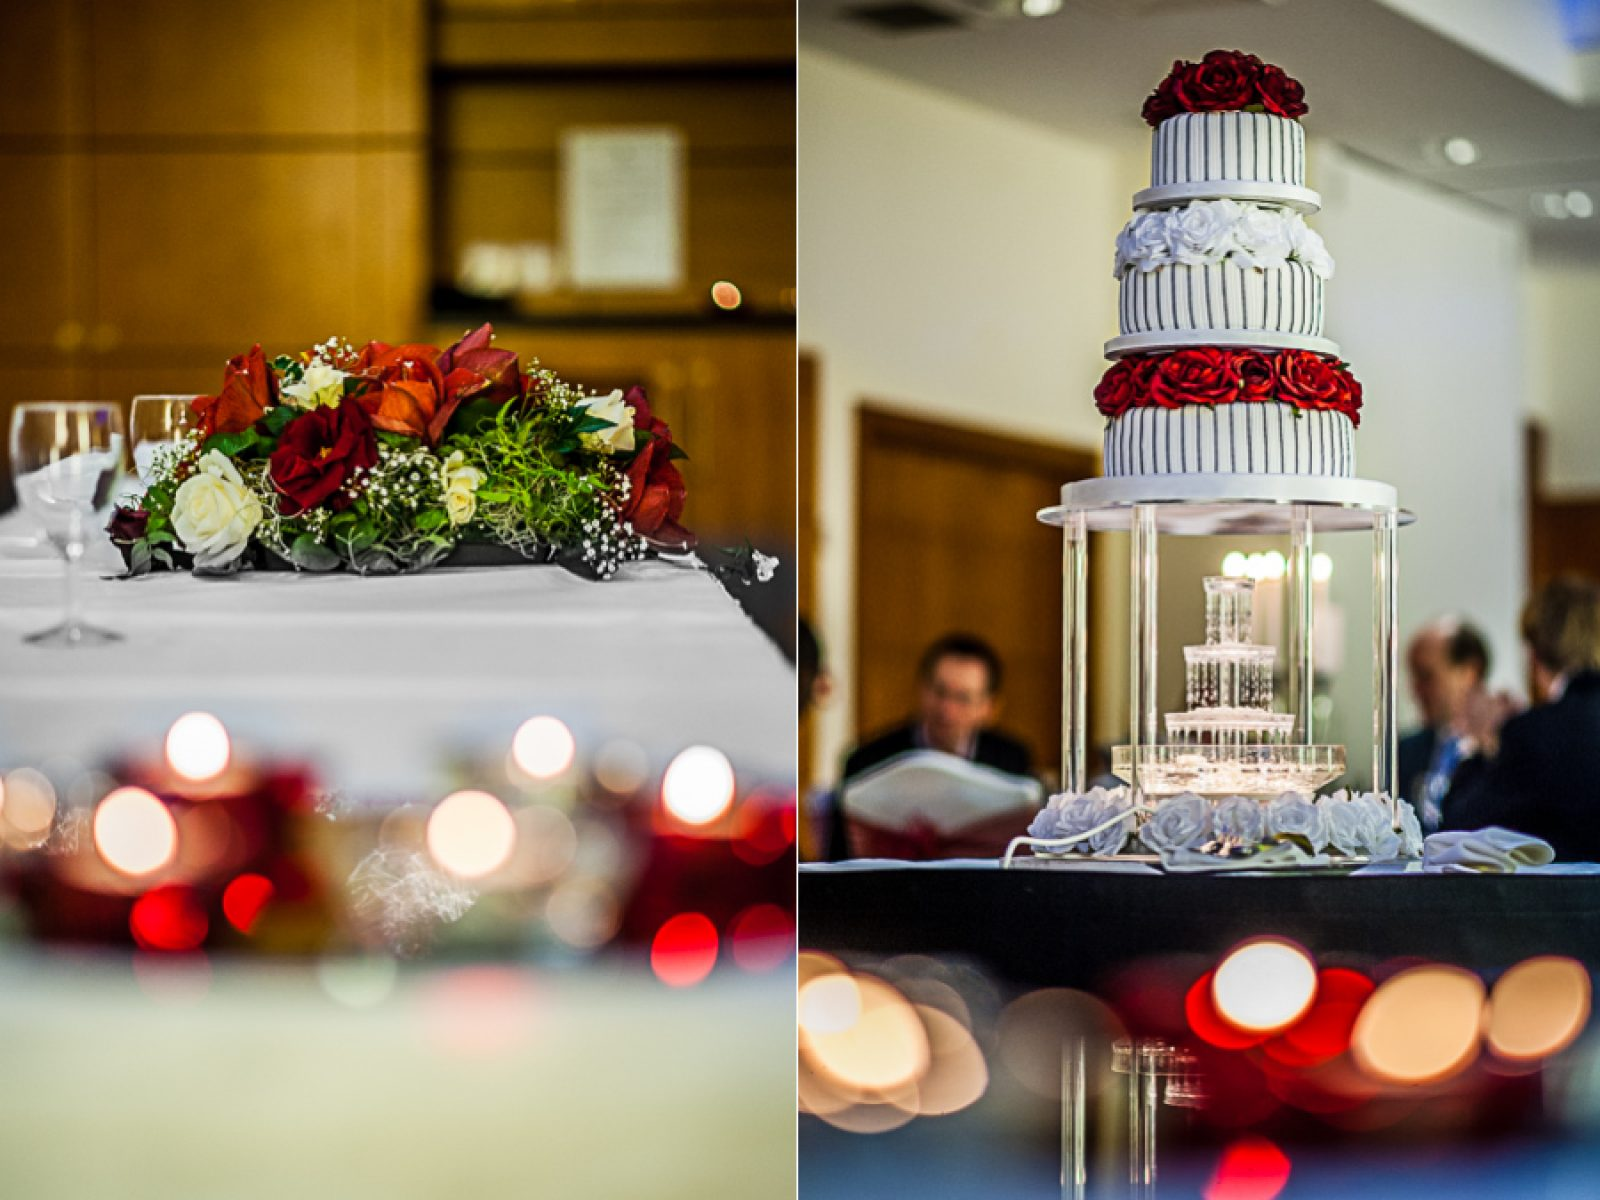 66 1600x1200 - Darshani and Anthony - wedding photographer in London